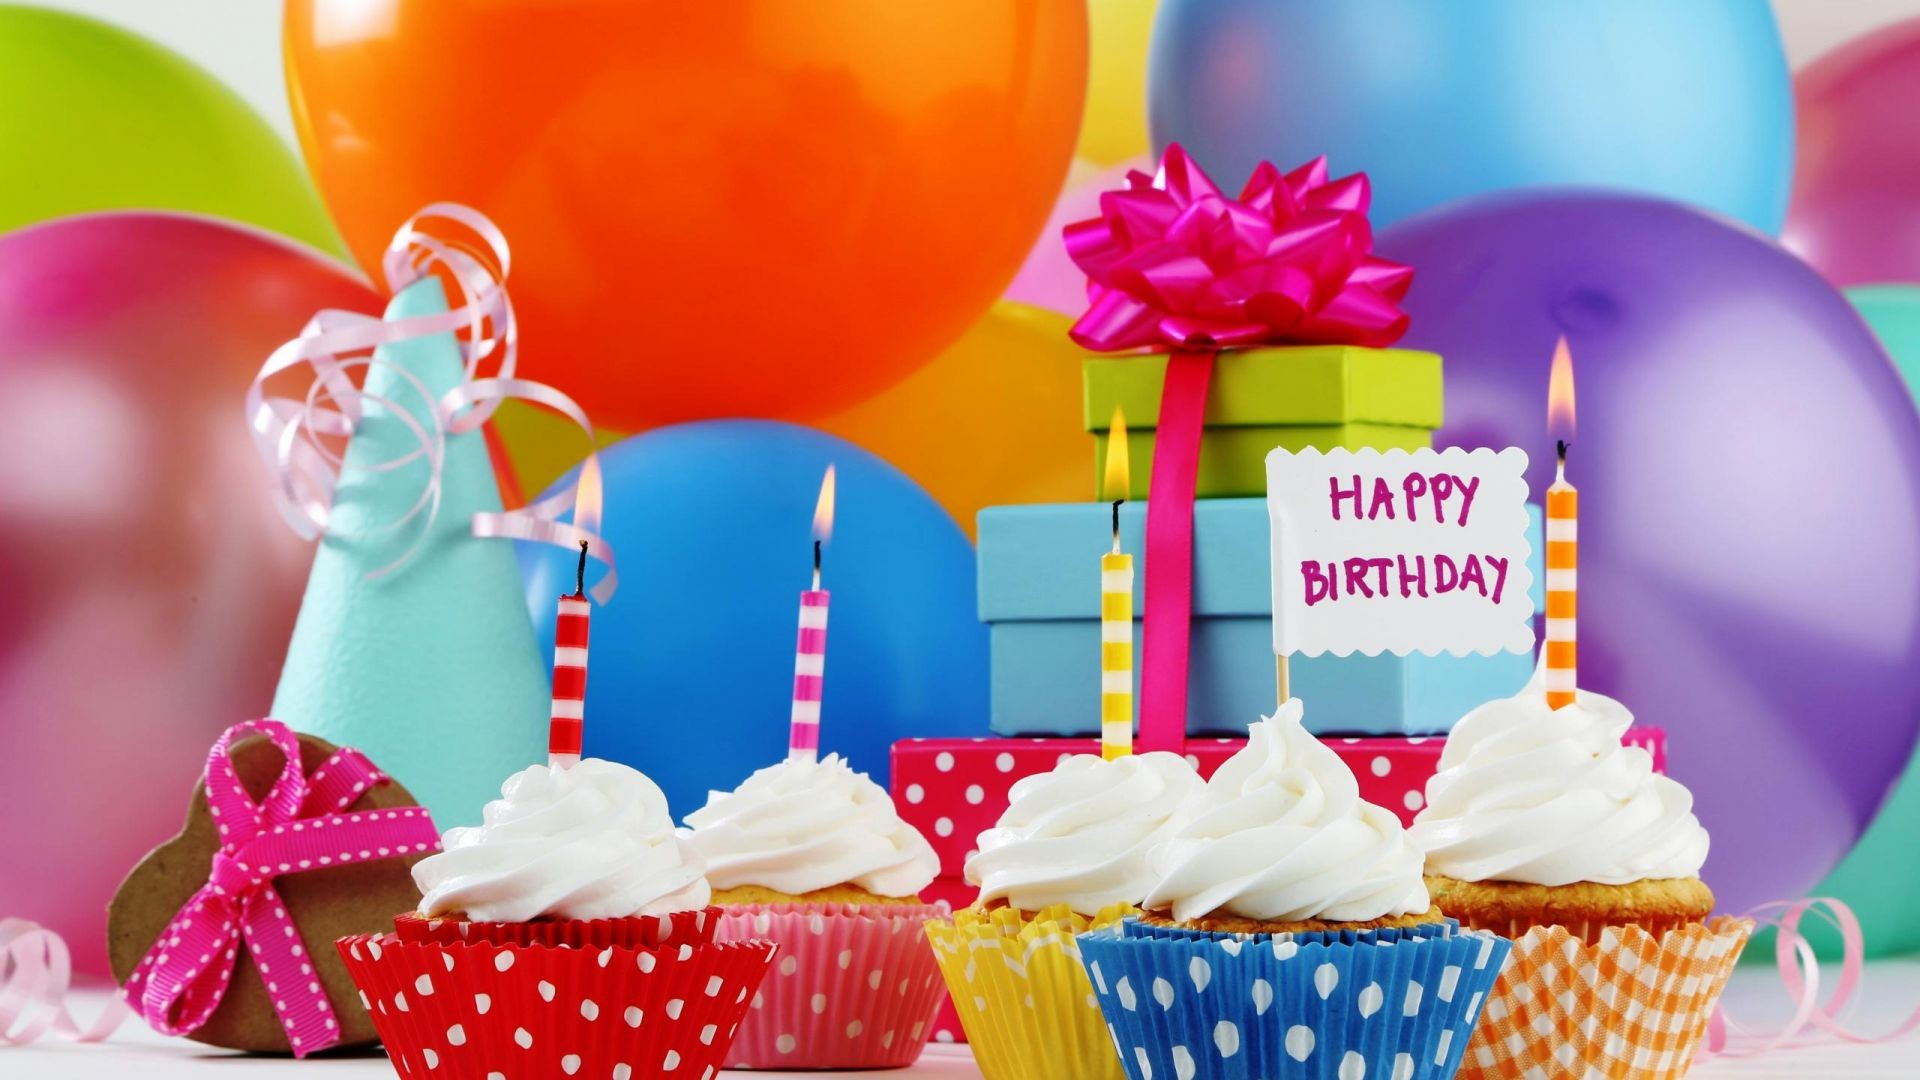 Res: 1920x1080, Happy Birthday Balloon Cupcake Gift Wallpaper | HD Birthday Wallpaper Free  Download ...